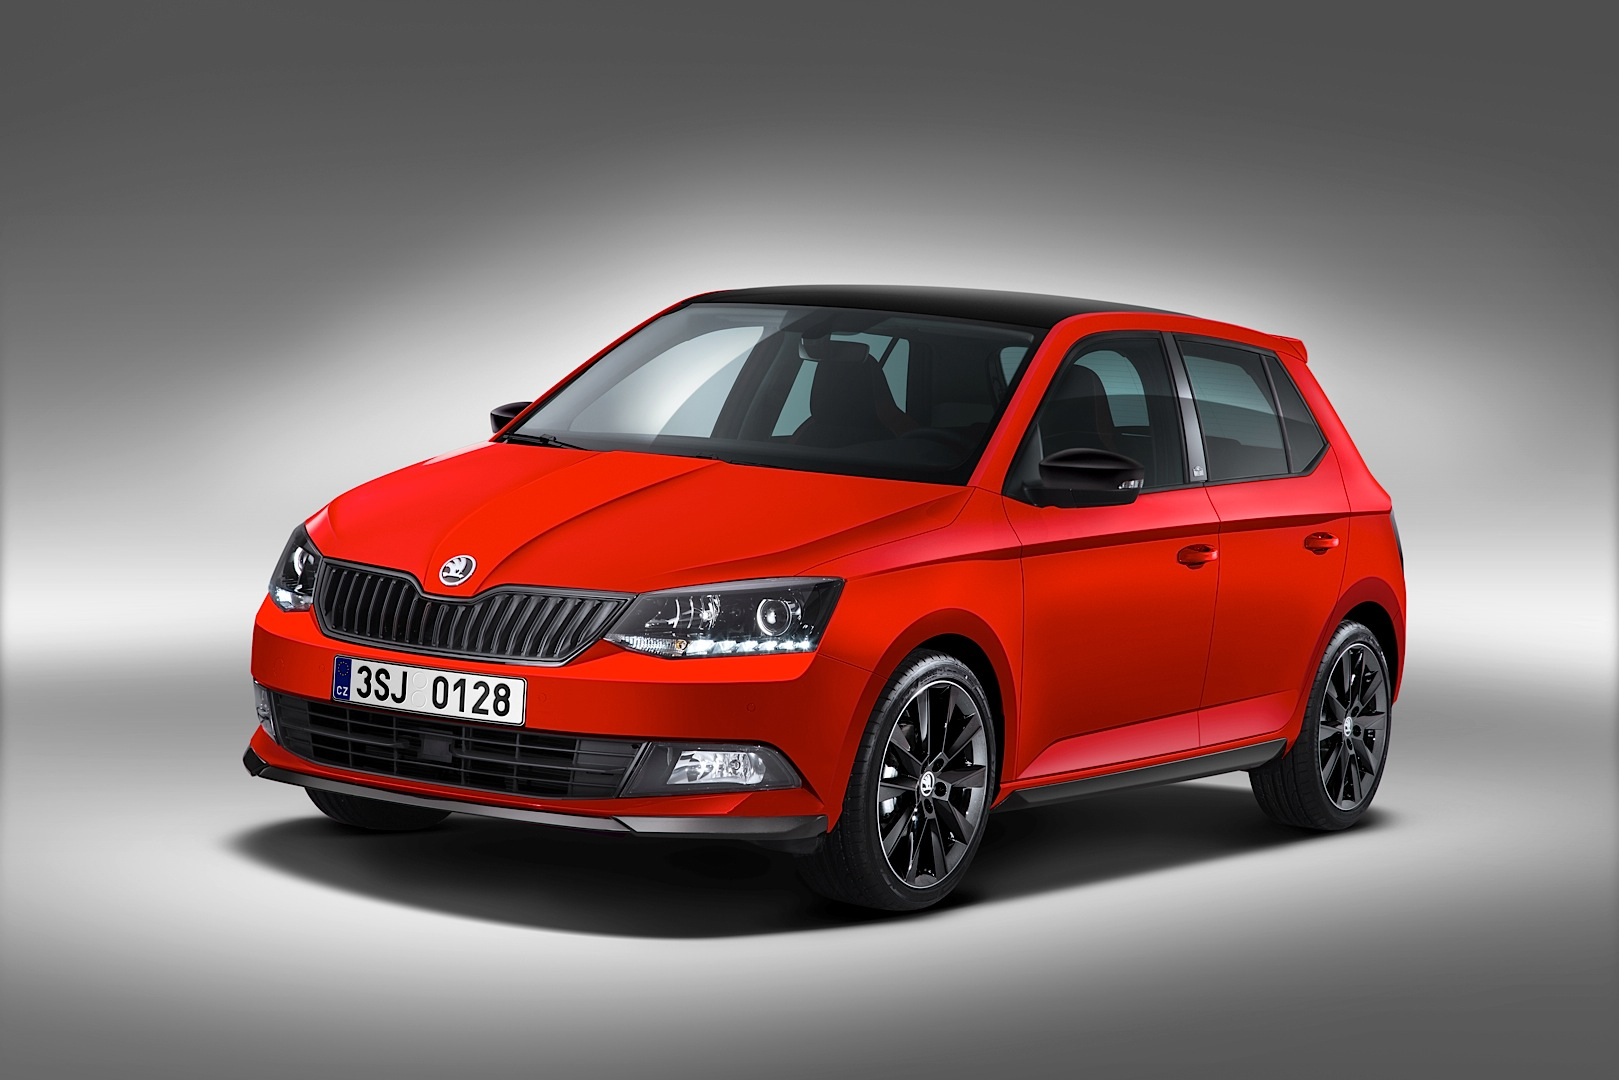 2015 skoda fabia monte carlo revealed ahead of geneva. Black Bedroom Furniture Sets. Home Design Ideas